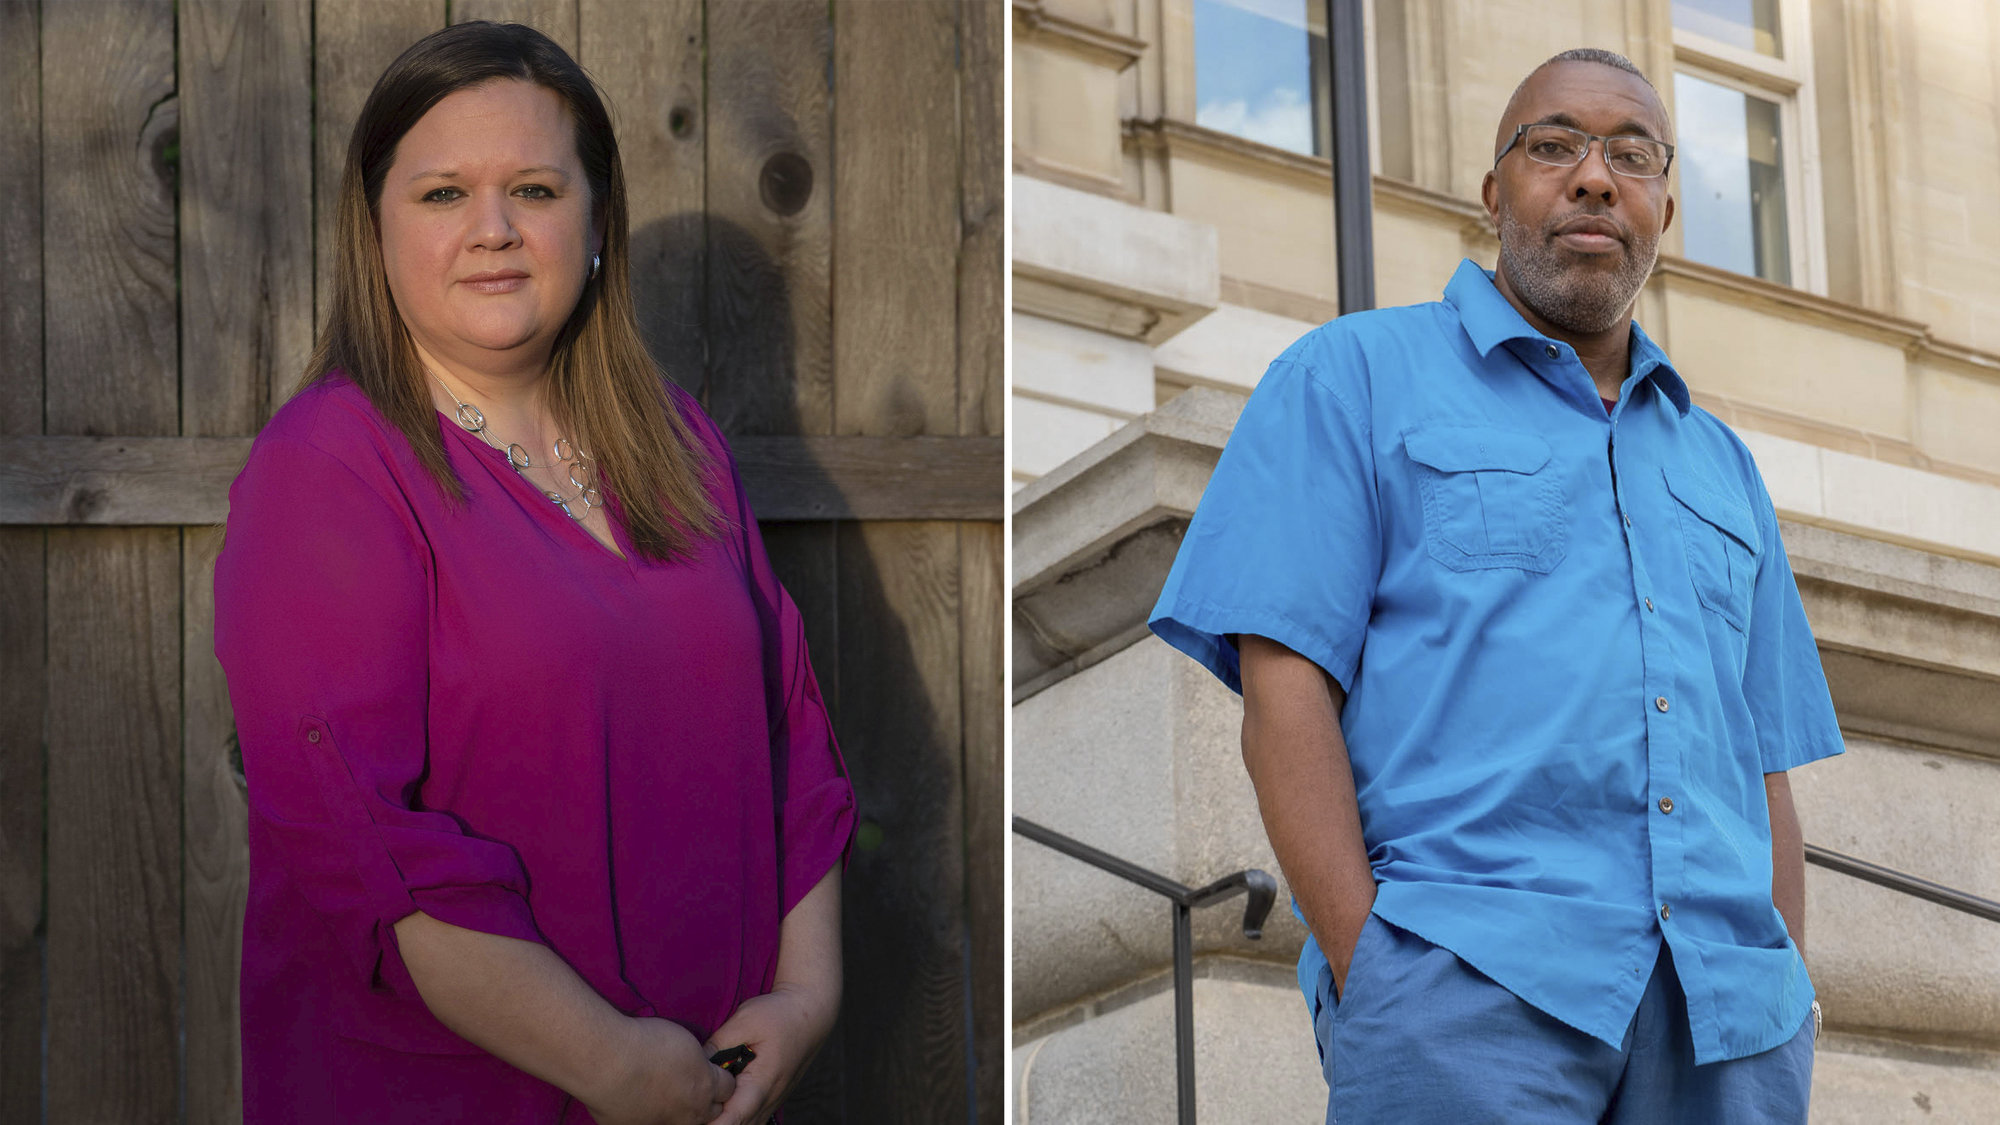 Tarra Simmons, left, and Kevin Harris are running for state representative respectively in Washington and Michigan. Both have been outspoken on the campaign trail about being formerly incarcerated.